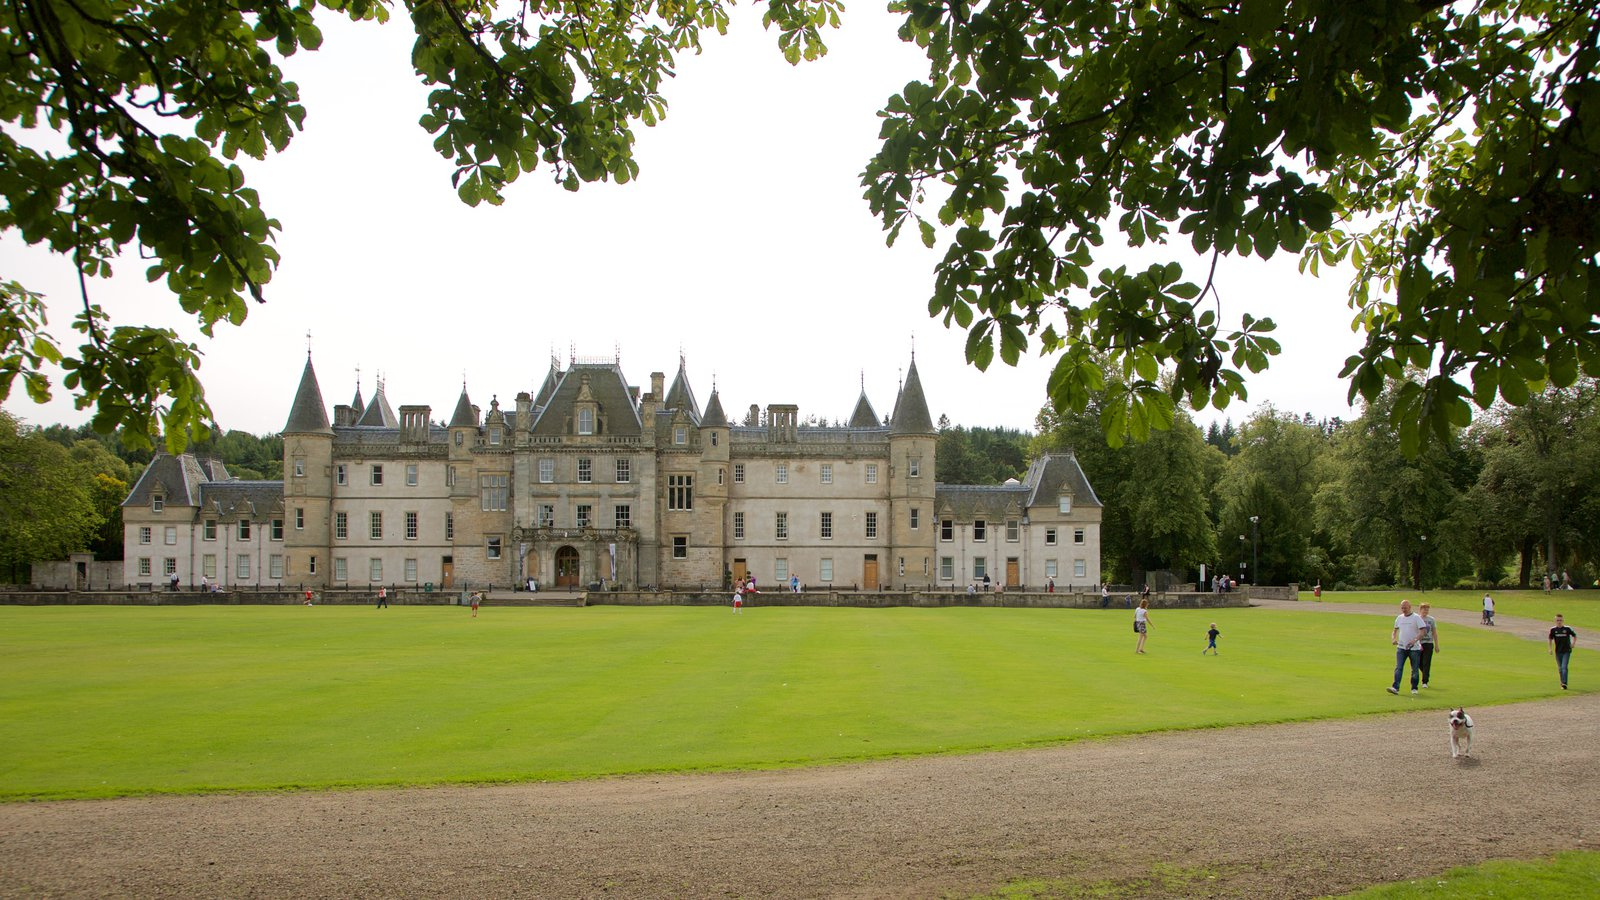 Castles & Palaces Pictures: View Images of Callendar House